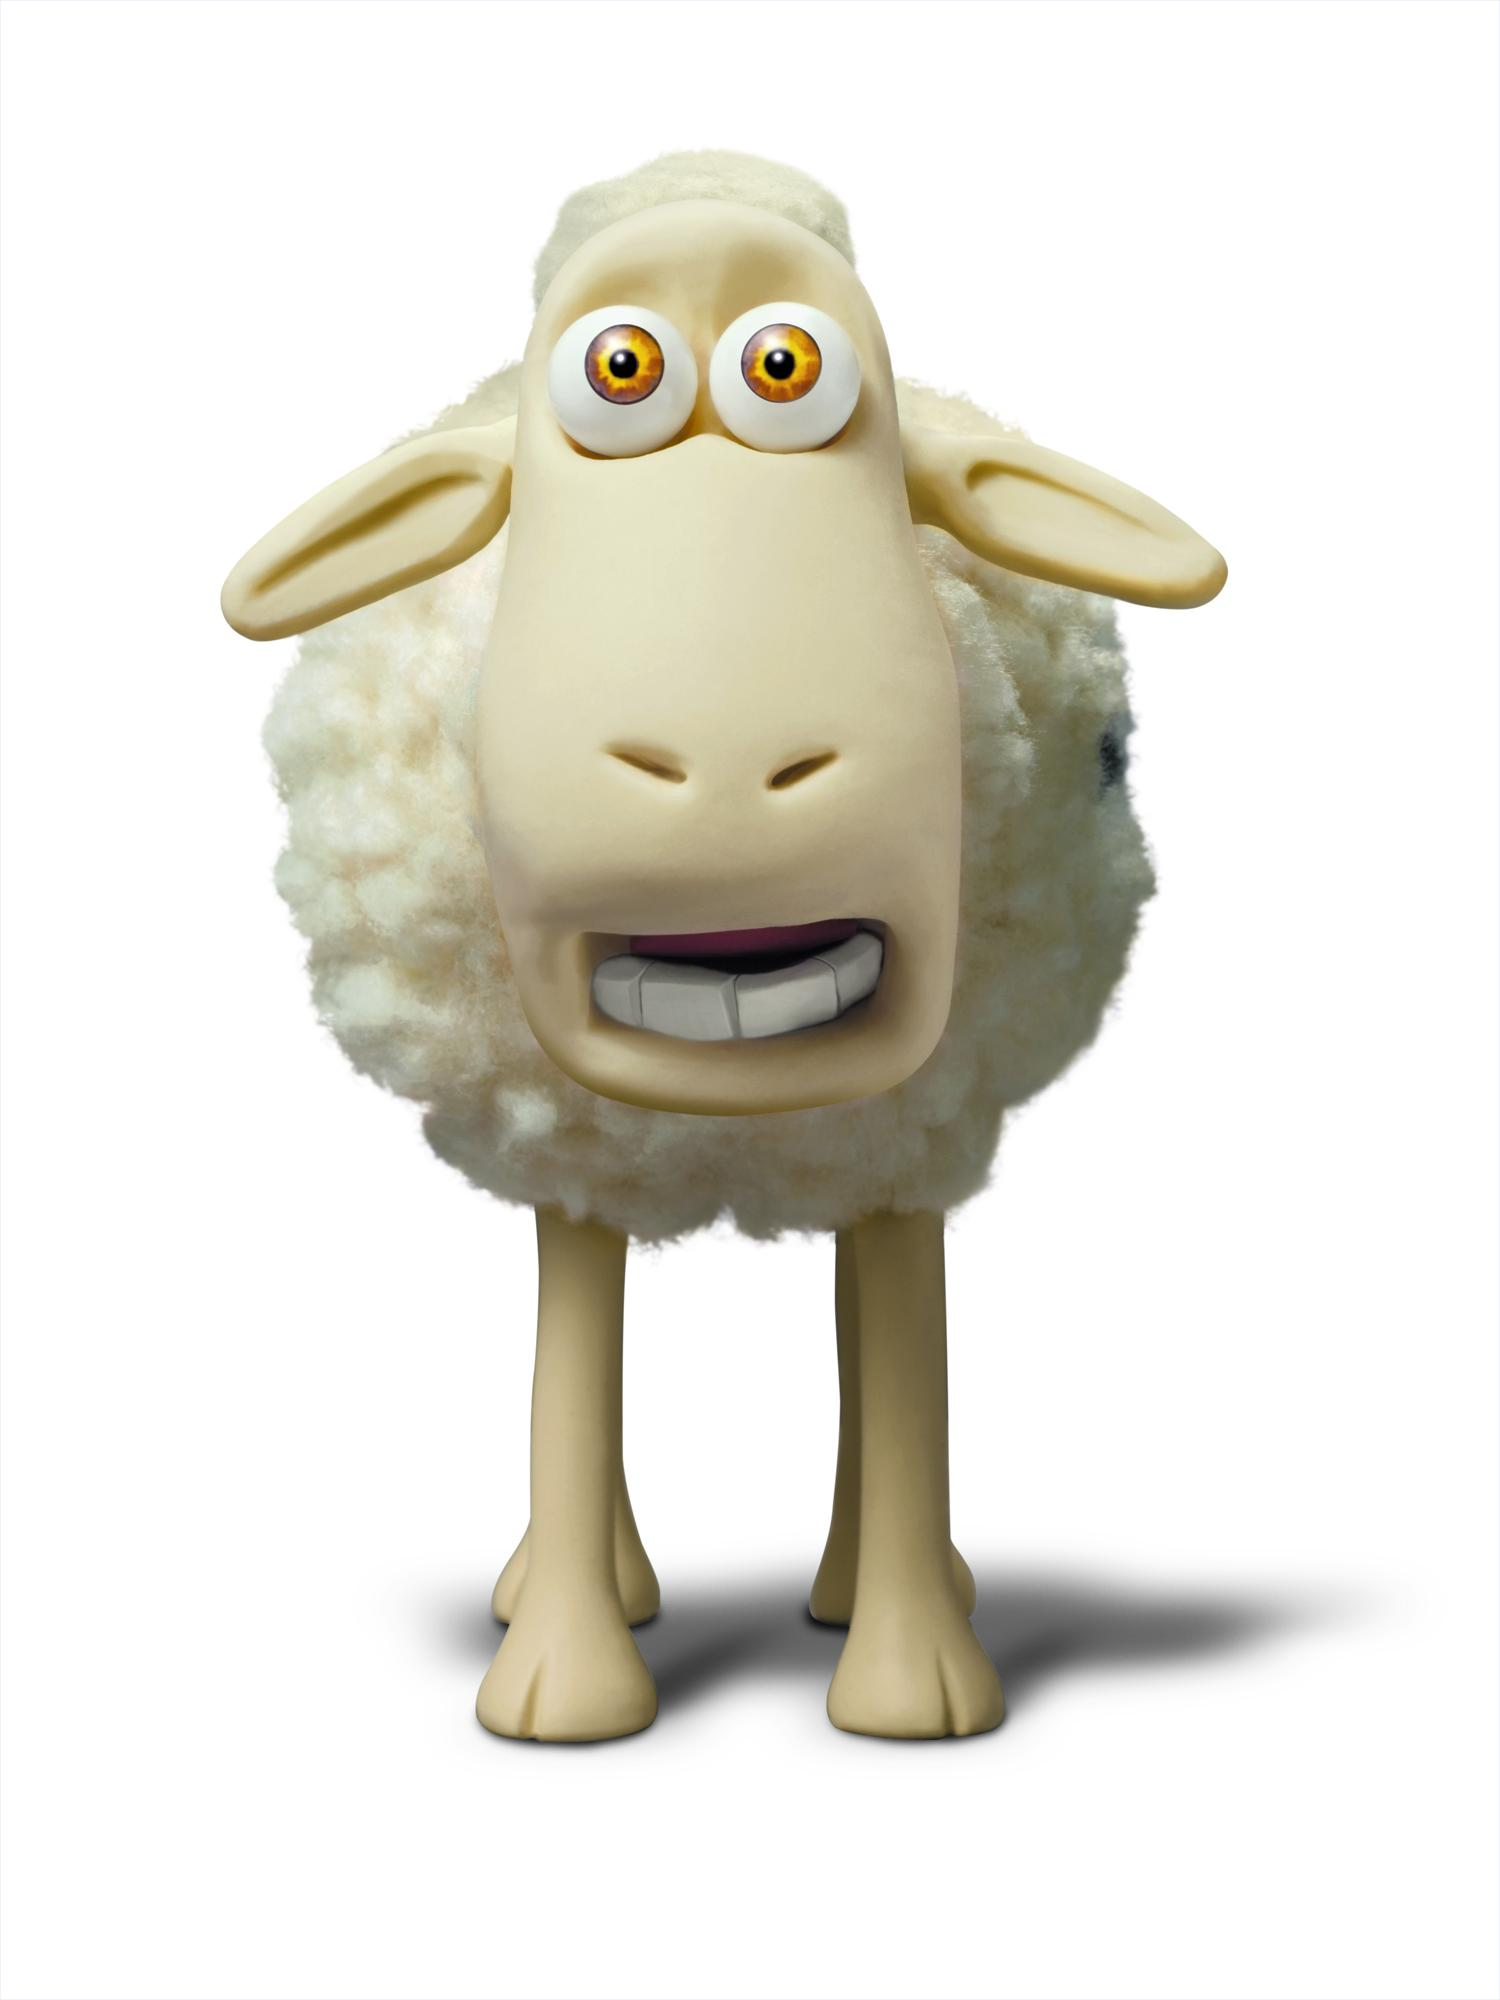 Serta Mattress On Twitter Quot This Counting Sheep Is Worried